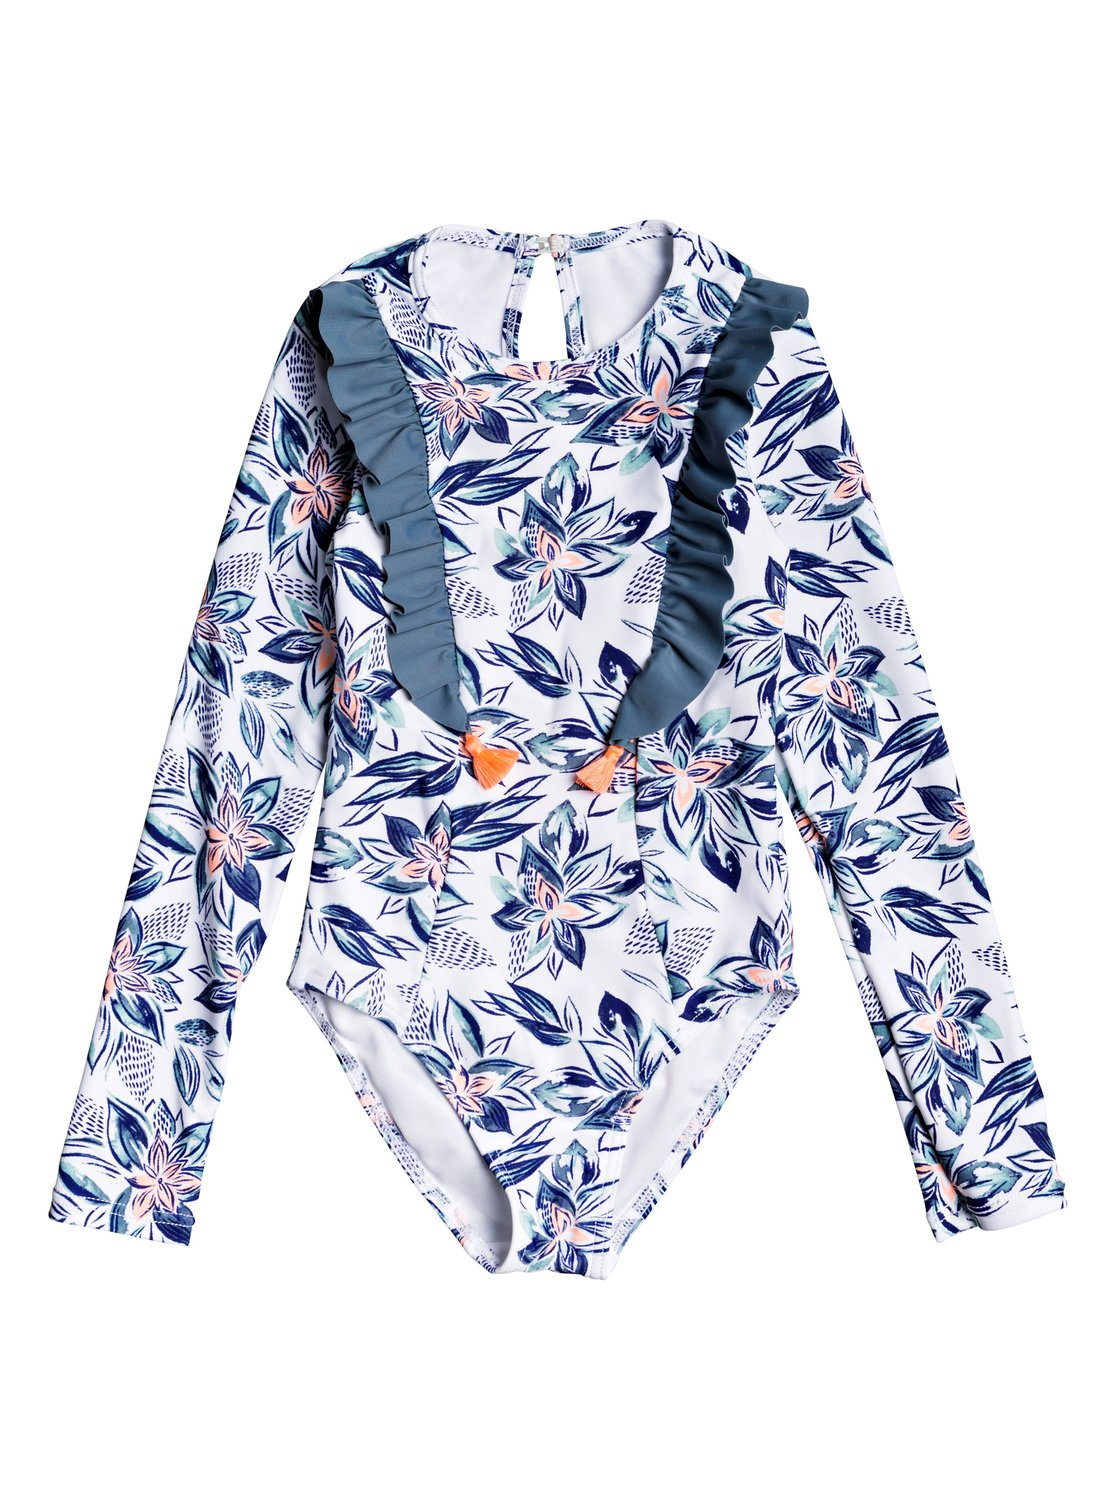 3729b25f116 0 Girl's 2-6 Magic Seeker Long Sleeve UPF 50 One-Piece Swimsuit White